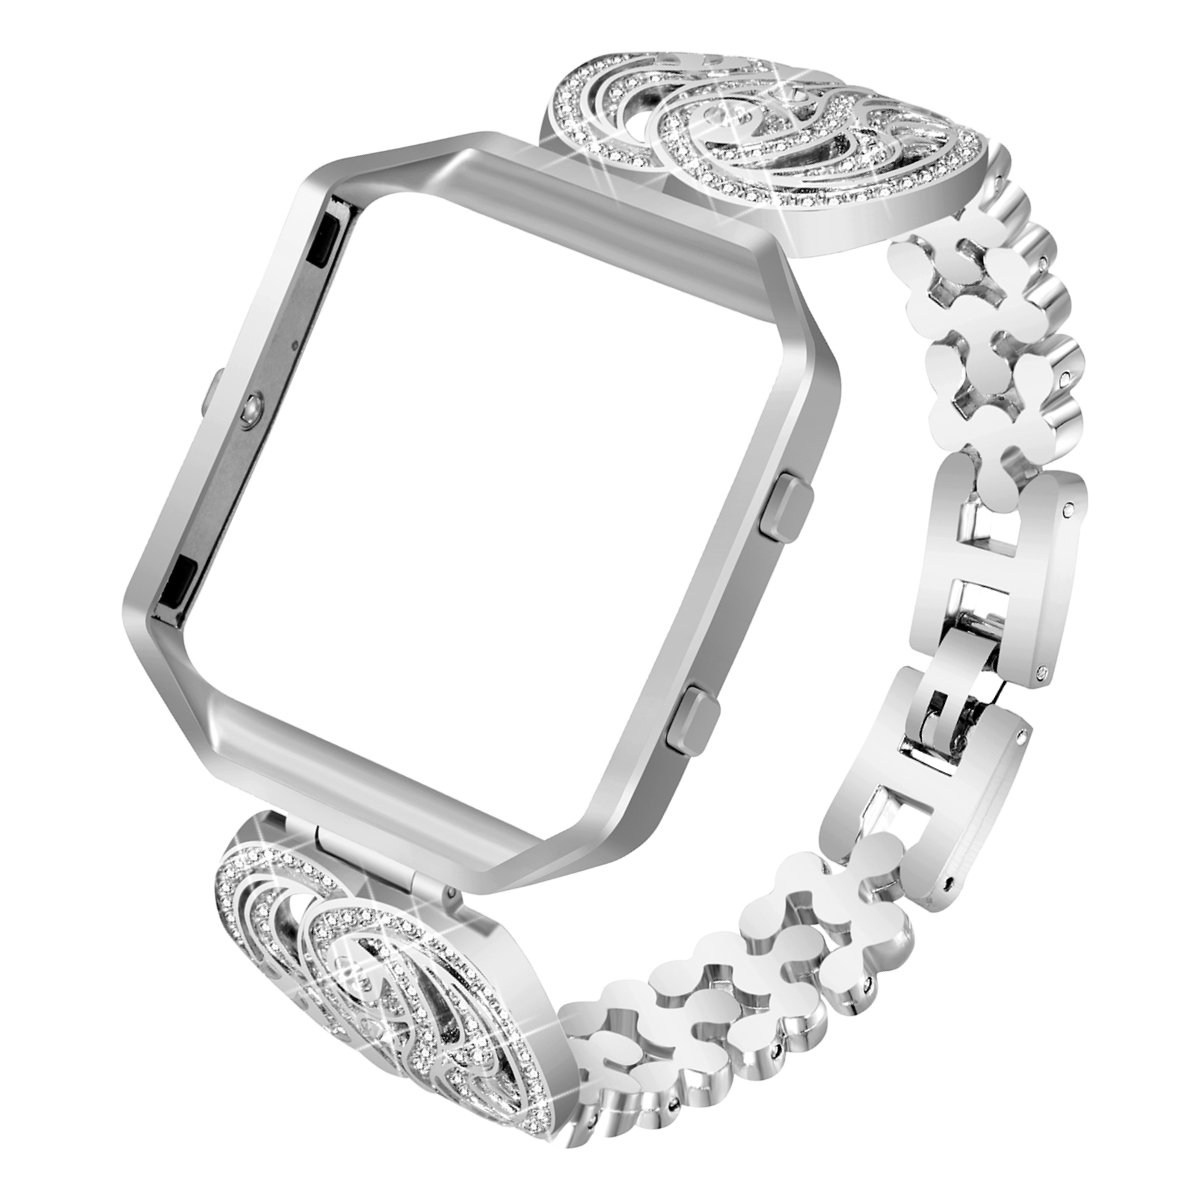 shop apple bargains silver on white for rhinestone buckle clasp with faux bling strap etsy wrap adapter bands studded kayliefrycreative double watch band iwatch and leather